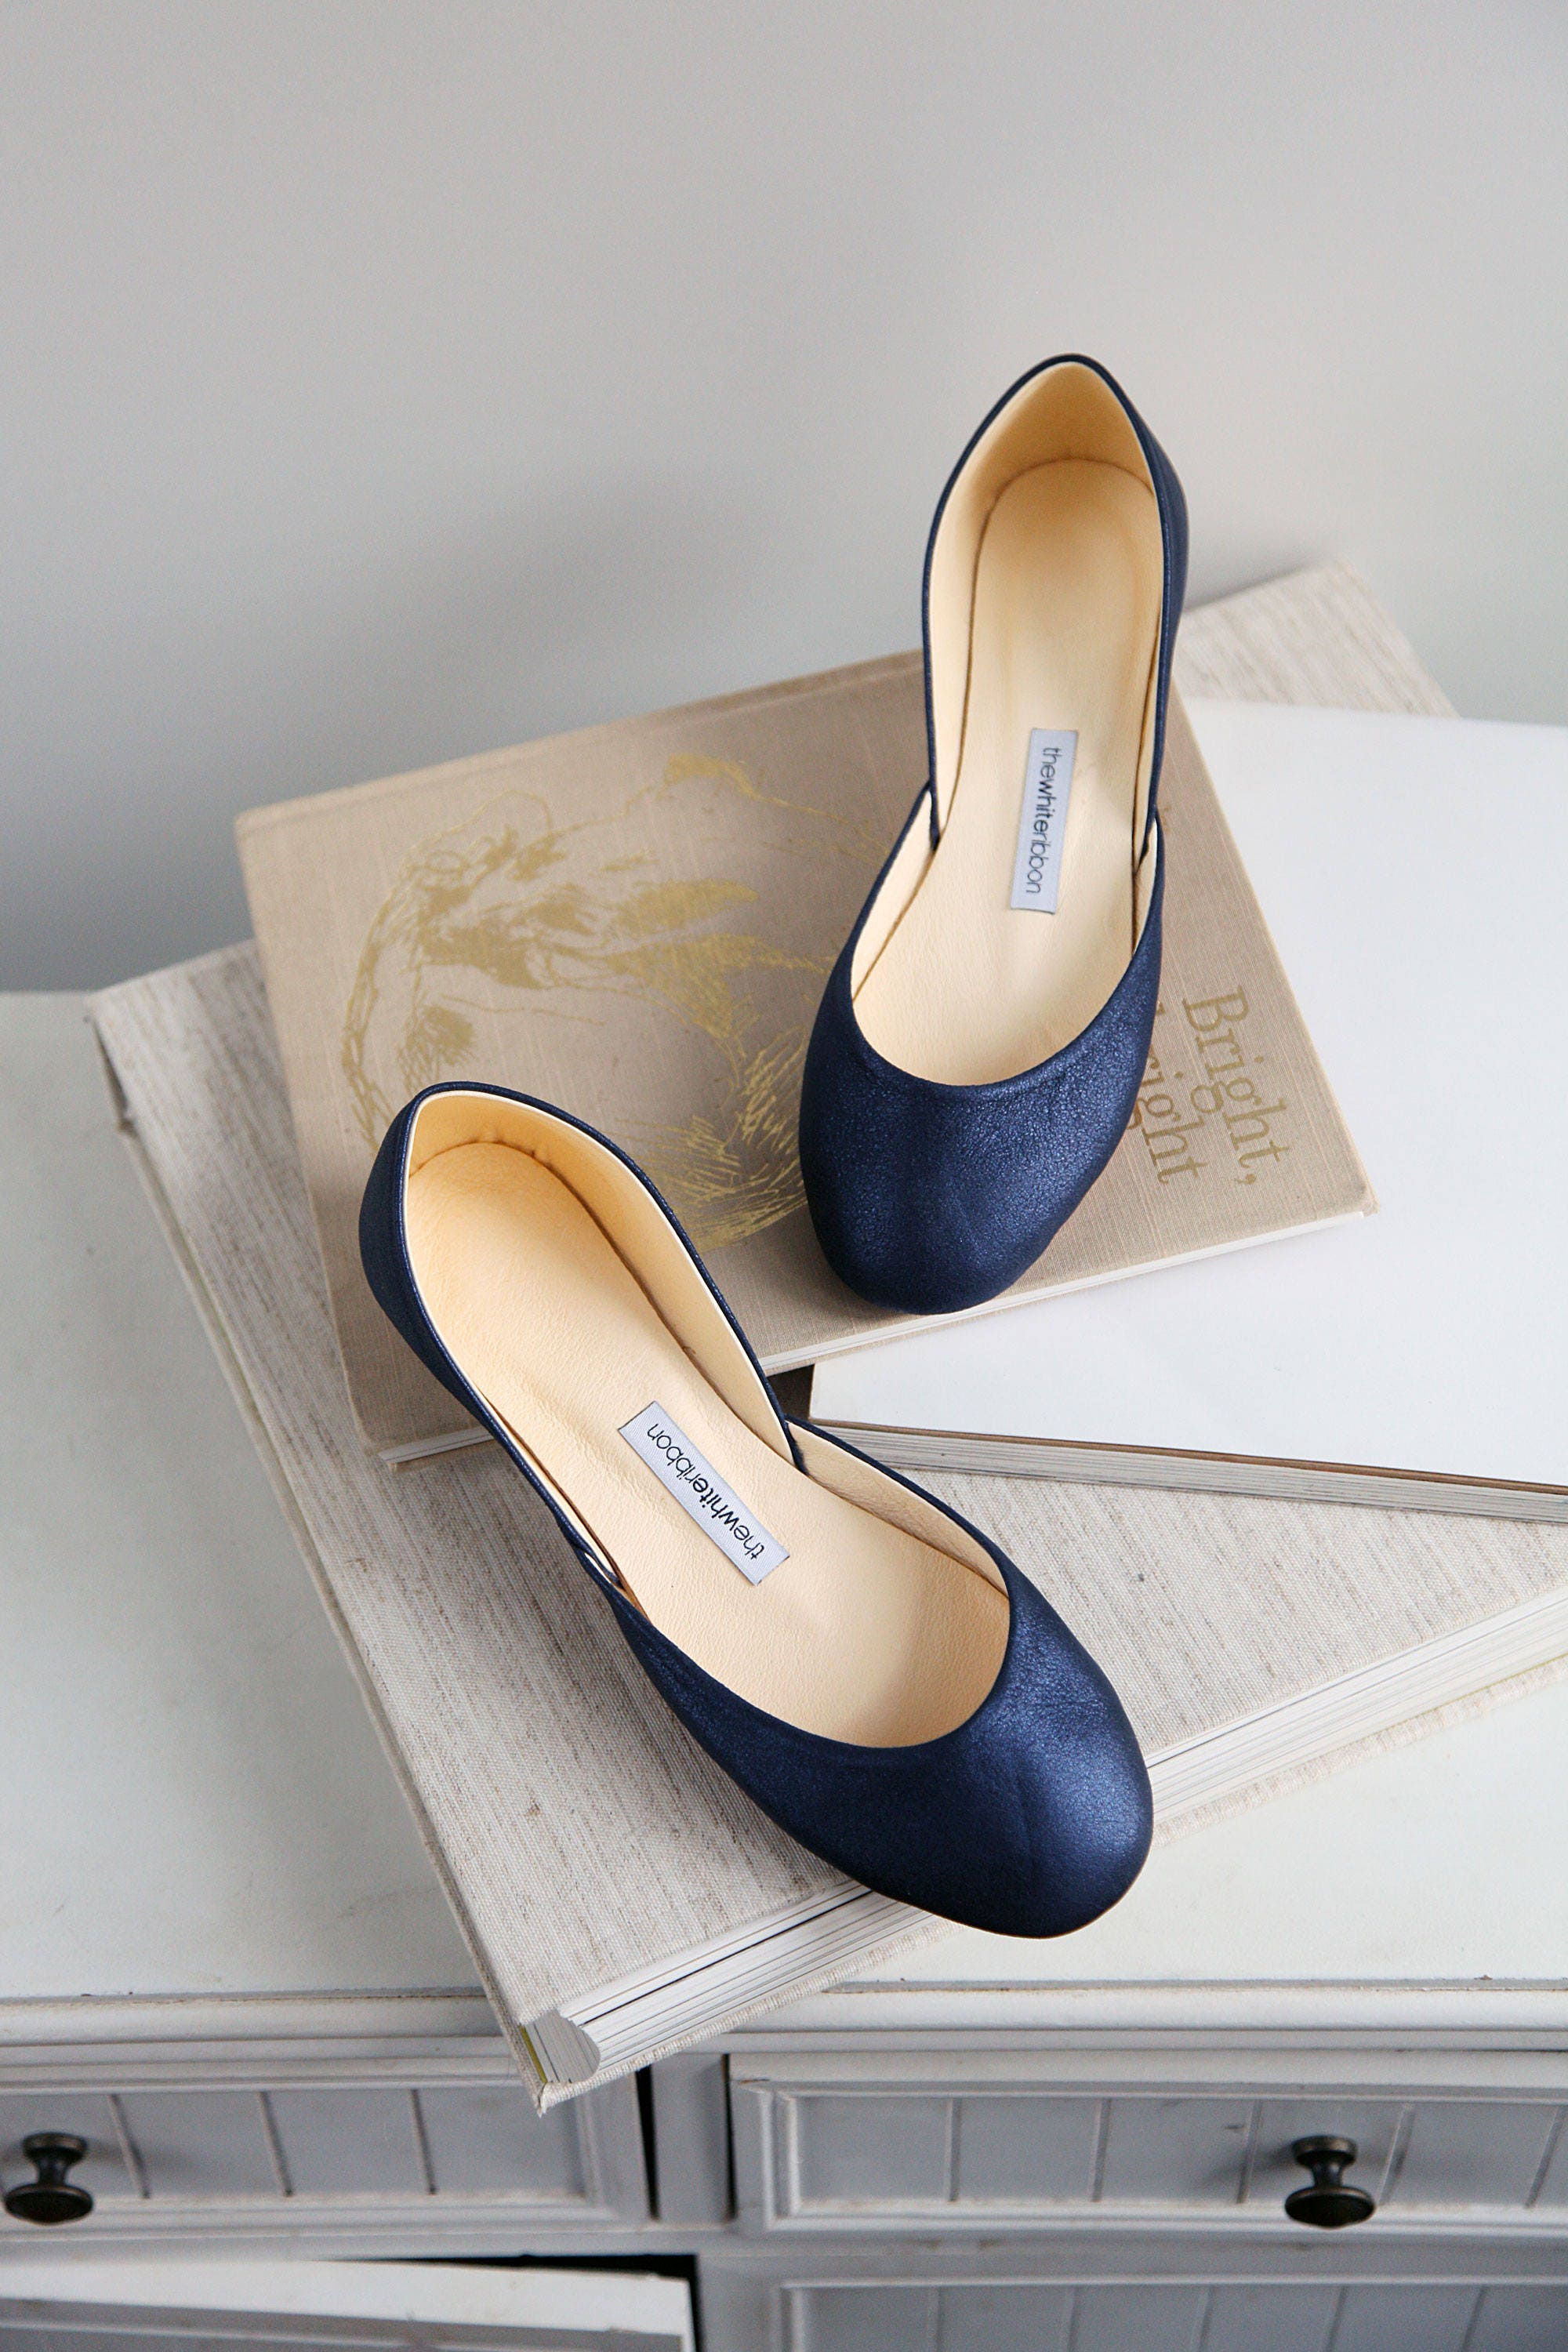 Dark Blue Bridal Shoes Flats | Sparkle Blue Ballet Flats Shoes | My Something Blue | Classic Model | Standard Width | Midnight Blue | Ready to Ship 4a56a4